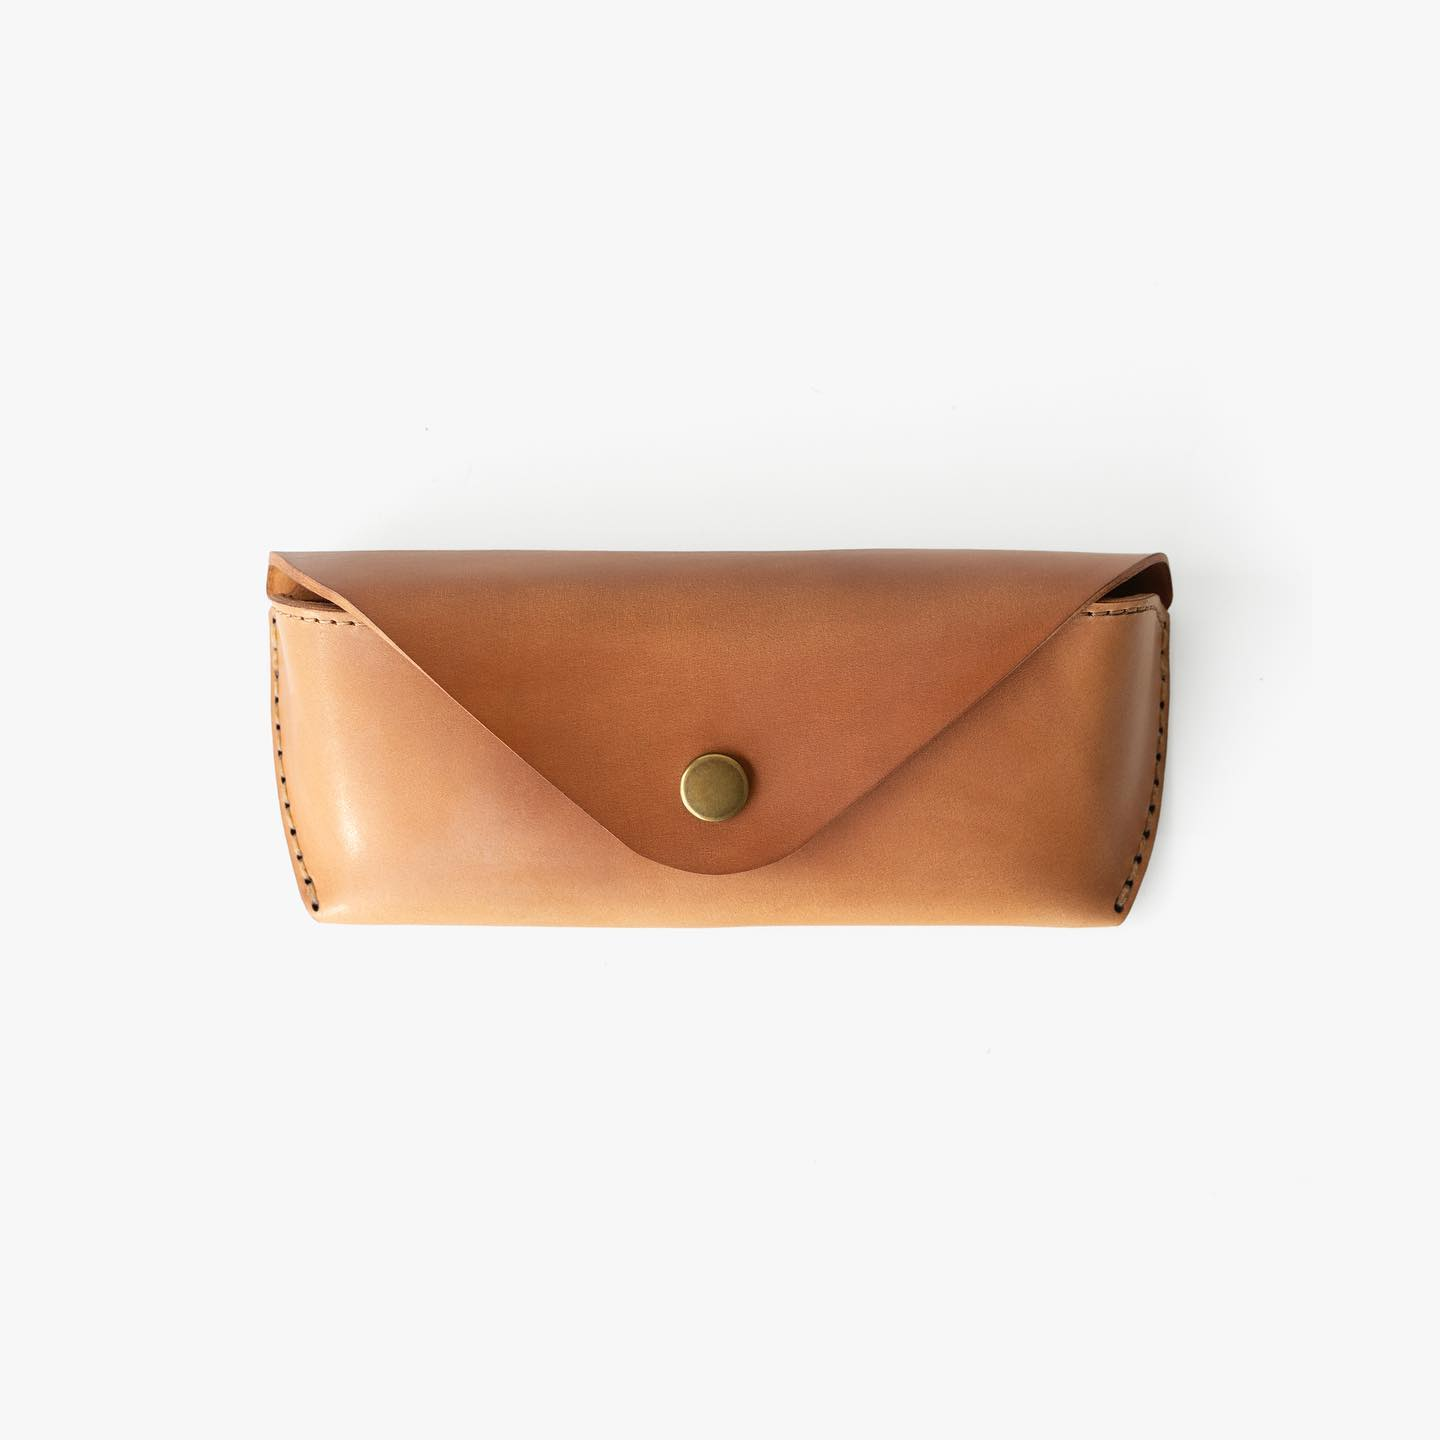 @wjandco asked us to make a full Natural @horweenleather Shell Cordovan Eyewear Case. It came out beautifully so we have added it to our site. Link in profile. #makrstudio #makrjournal #horweenleather #horween #horweenshellcordovan